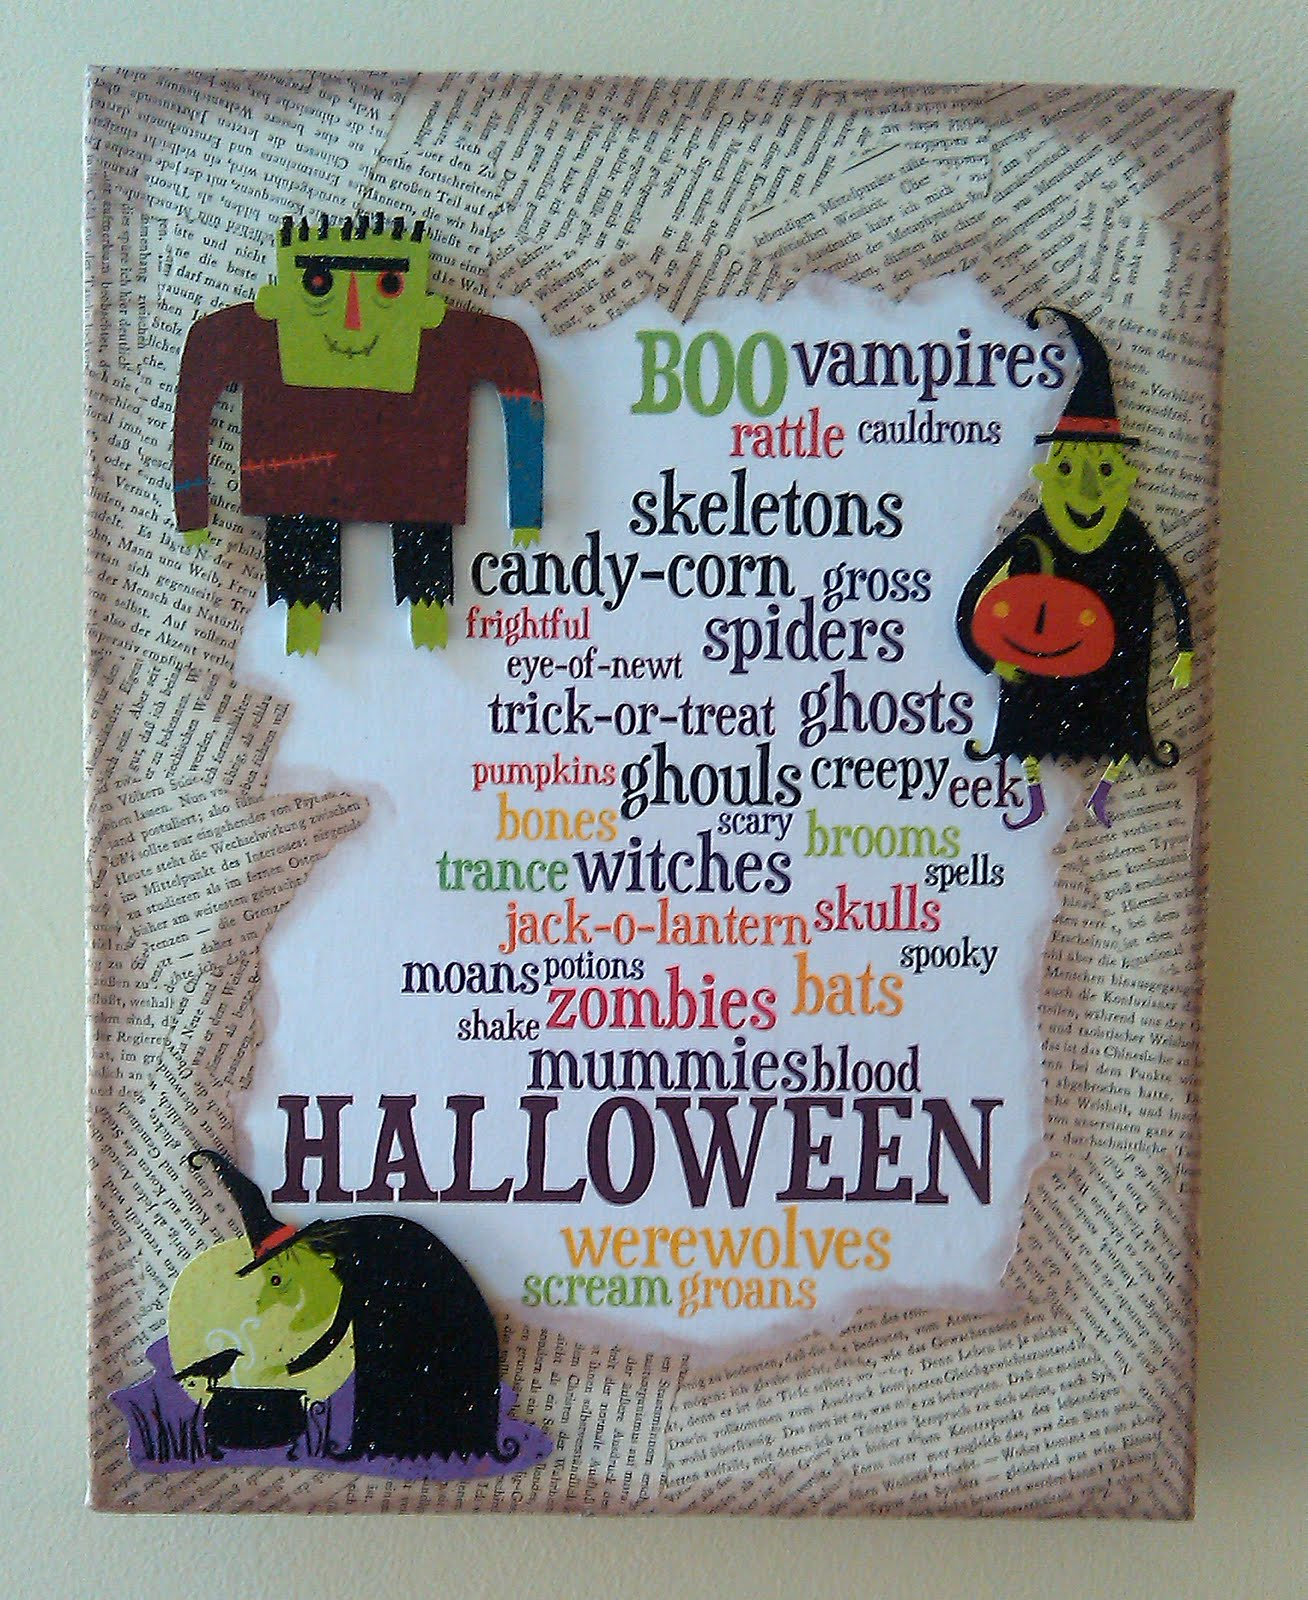 https://i0.wp.com/1.bp.blogspot.com/_VM_sXapgq6I/TJ9NKf6ue5I/AAAAAAAADOE/cAYWDGGvRUU/s1600/Halloween+Wordle+Art+copy.jpg